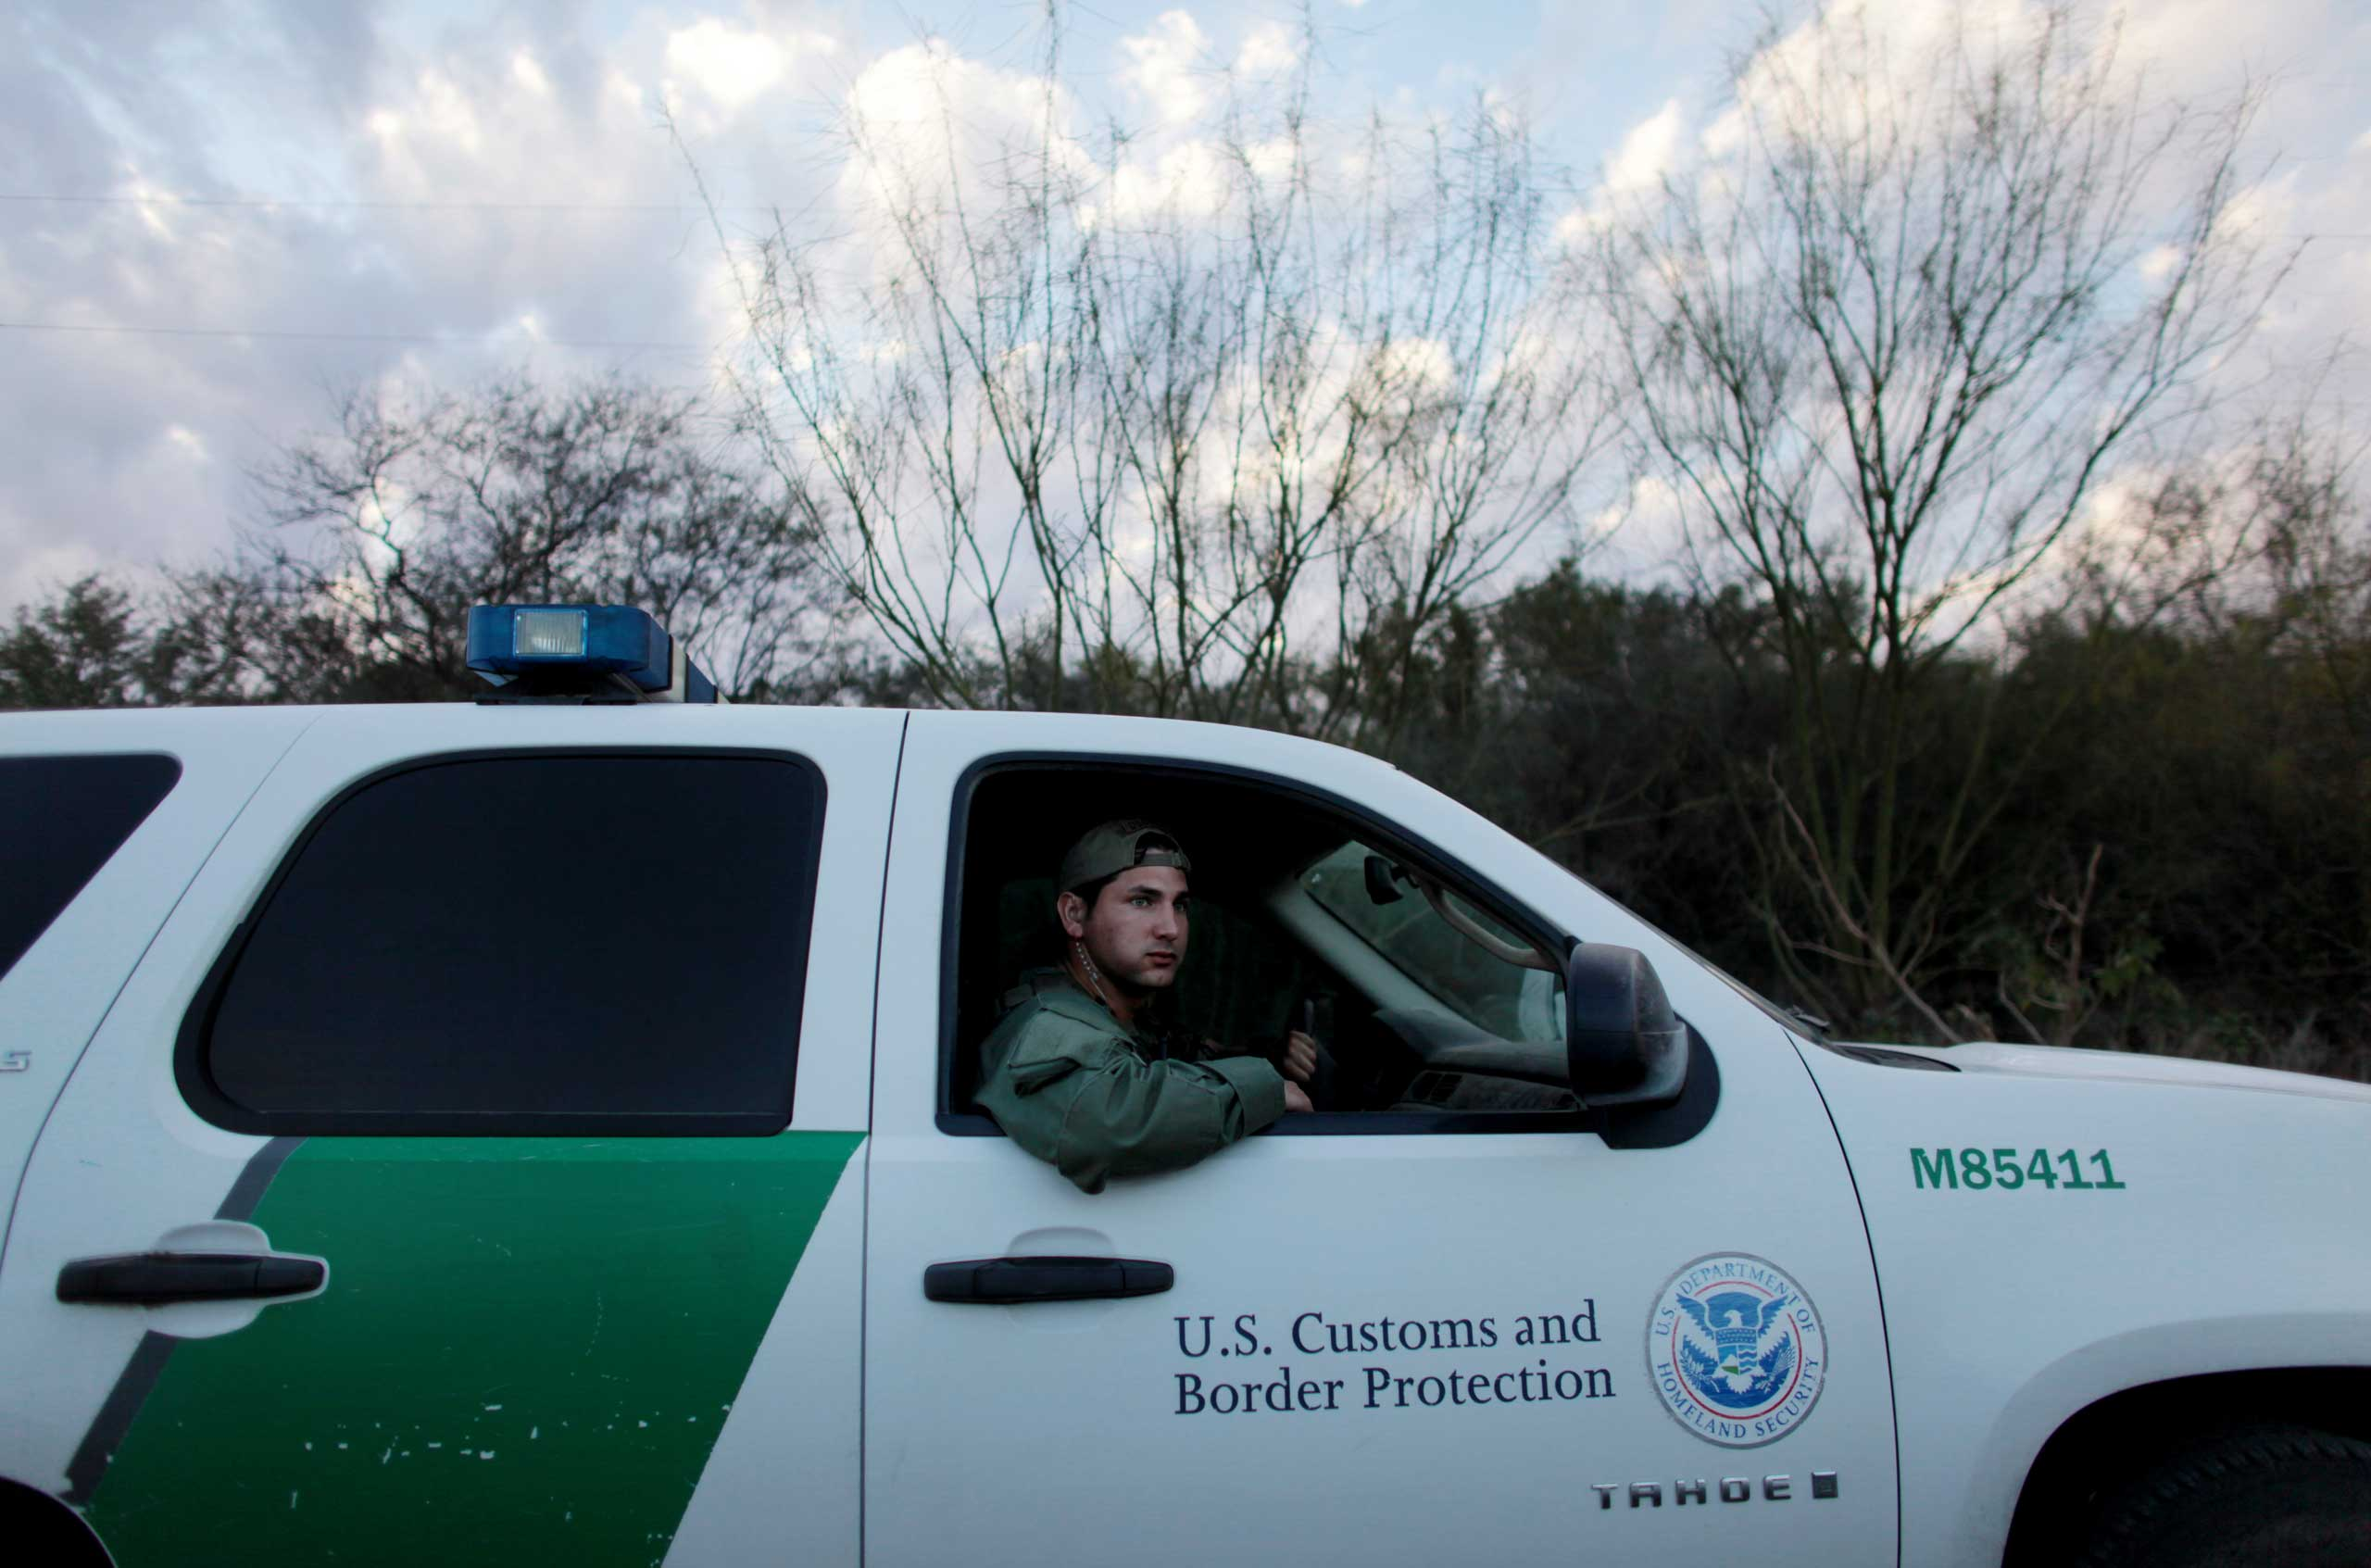 Border Patrol agents patrol the floodplain along the banks of the Rio Grande, south of Mission, Texas on Feb. 13, 2013.